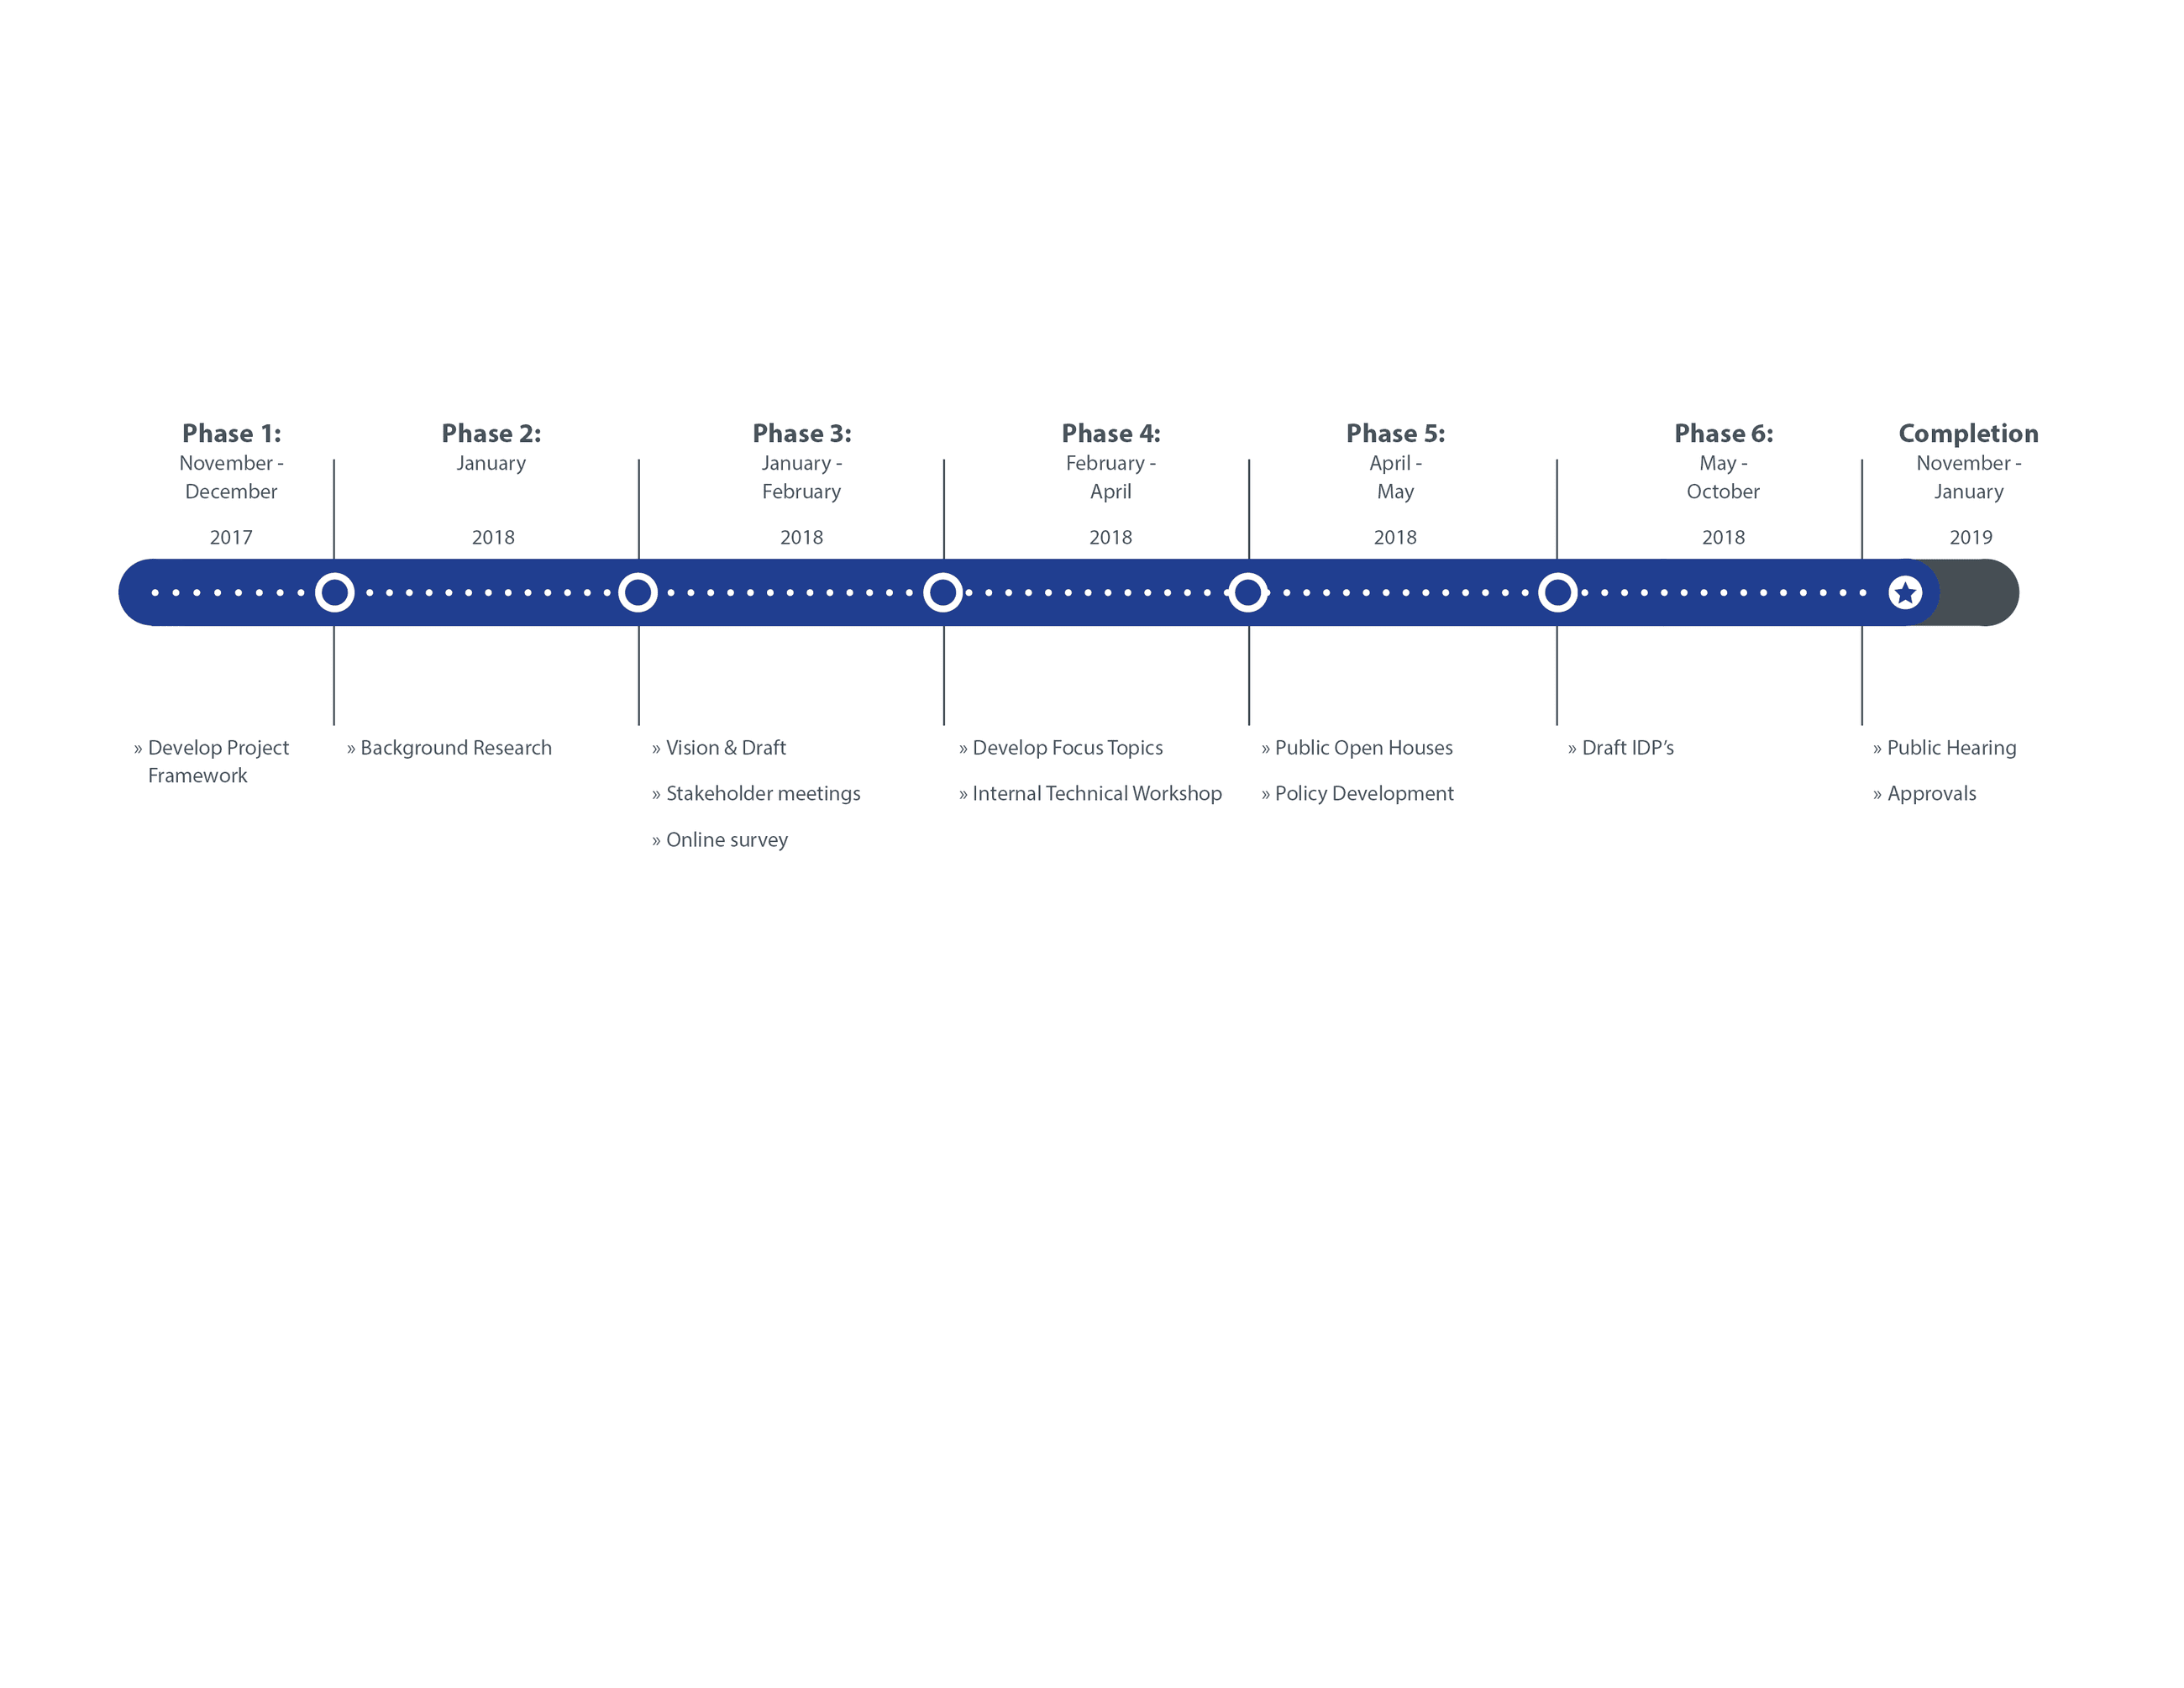 5. Project Timeline Opens in new window